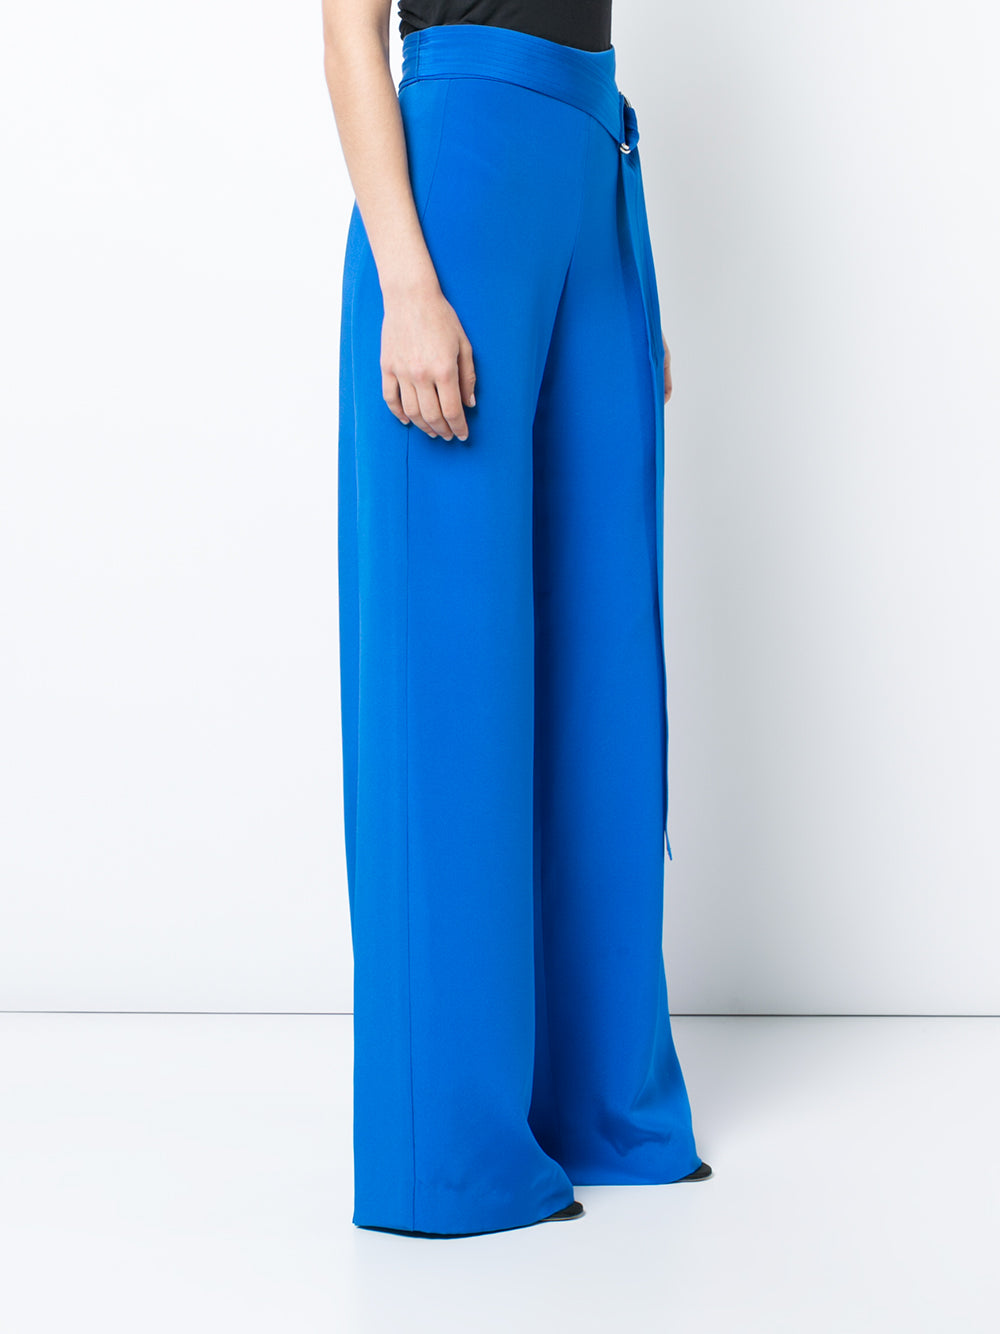 SILK CREPE WIDE LEG PANT WITH SIDE SLITS AND BELT